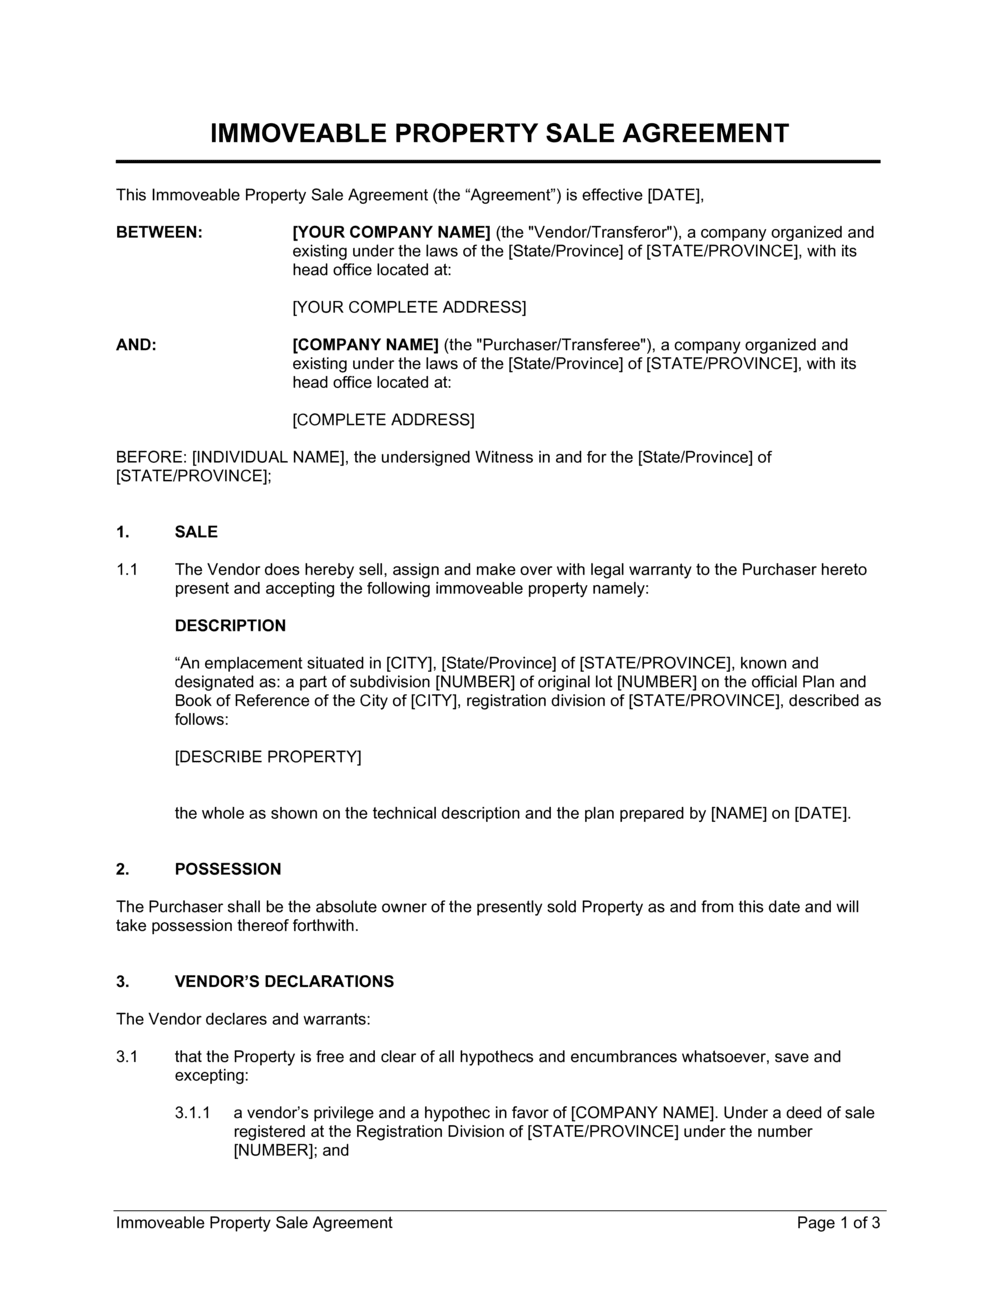 Business-in-a-Box's Immoveable Property Sale Agreement Template